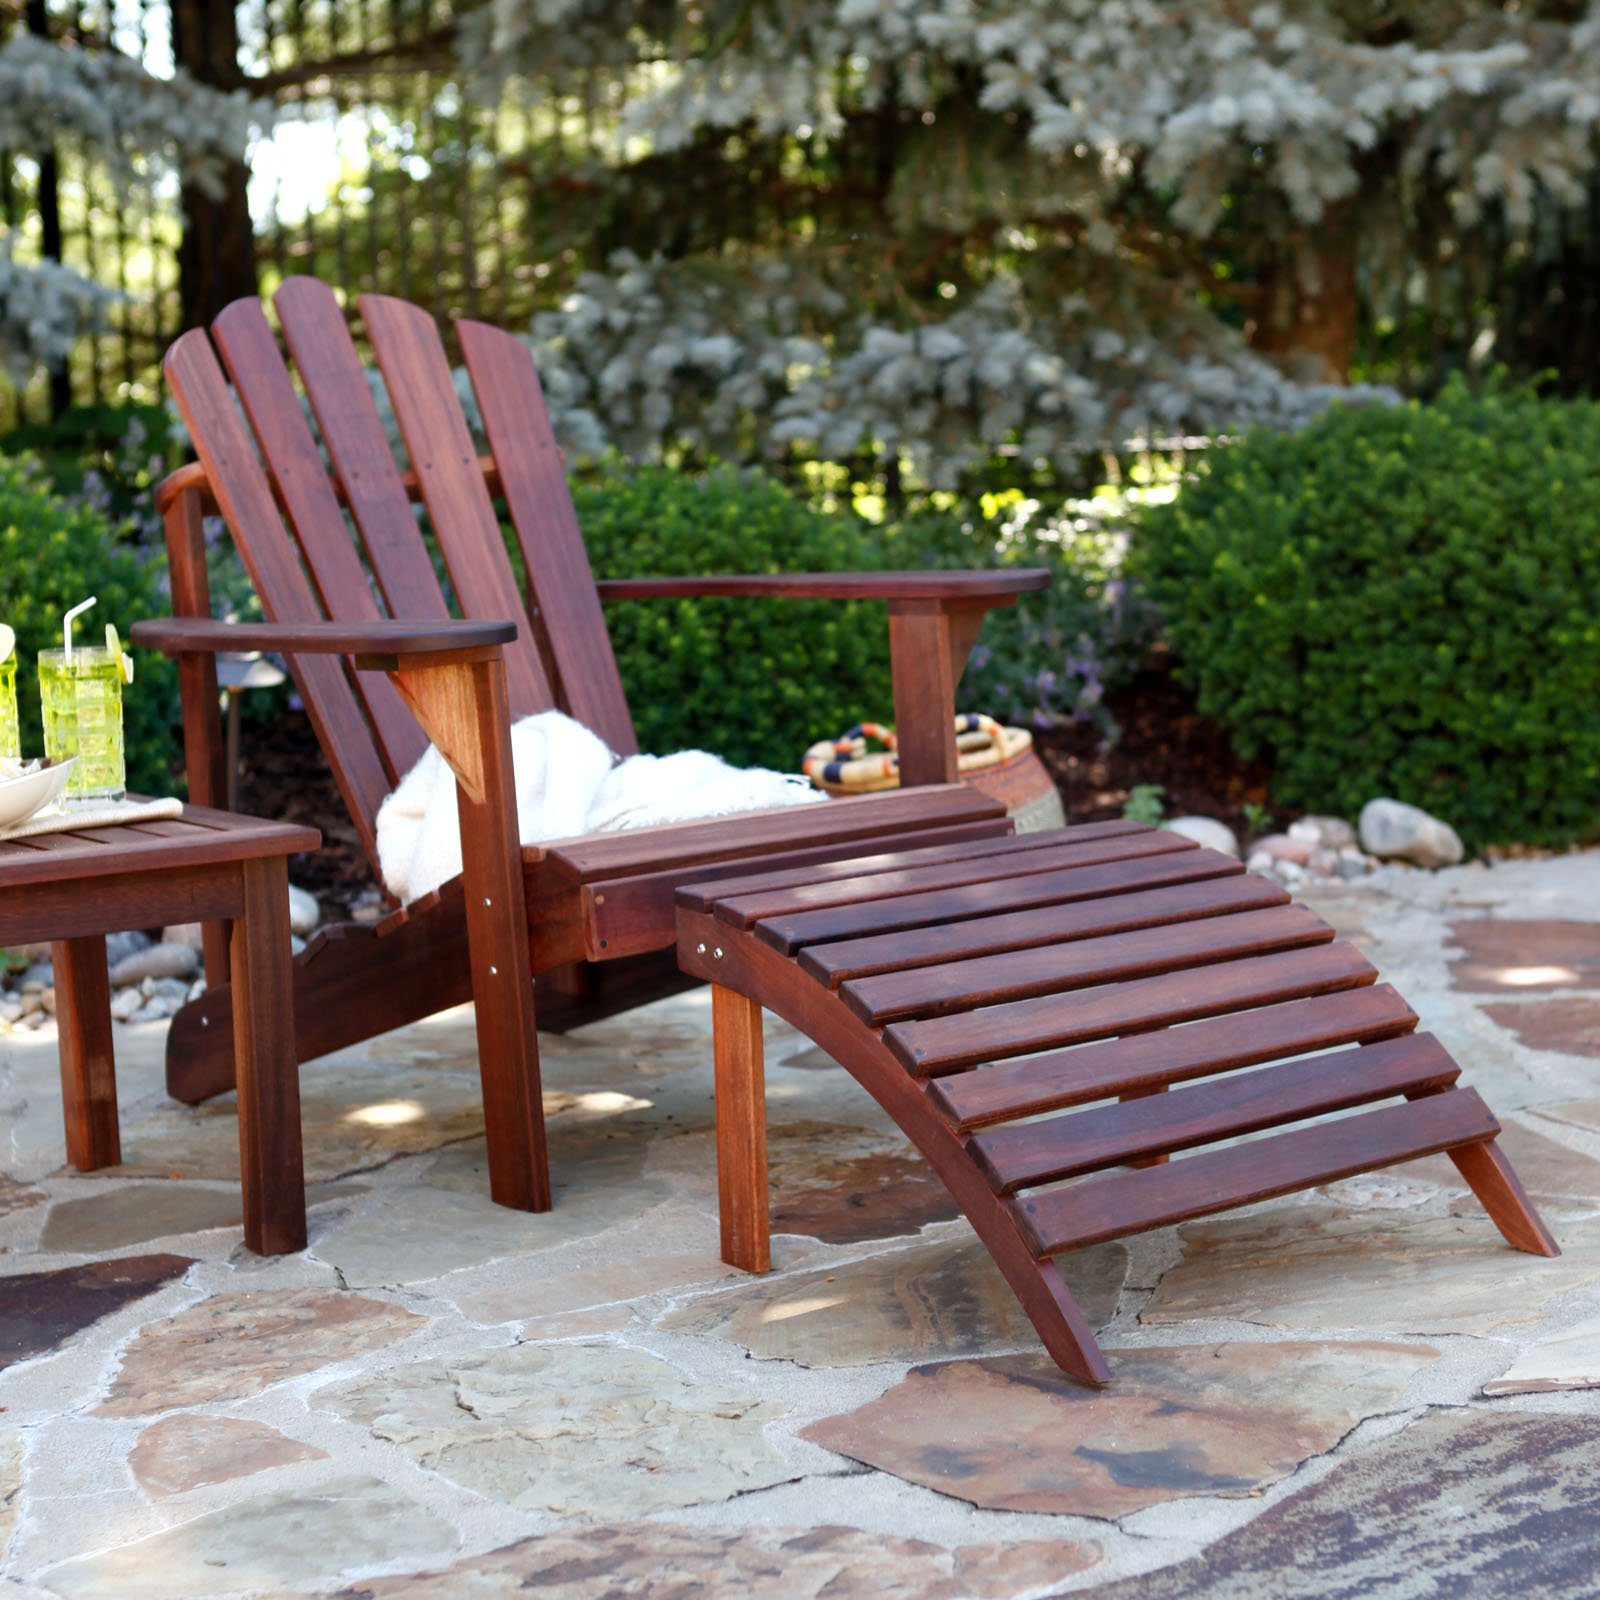 Attirant Belham Living Richmond Deluxe Adirondack Chair And Ottoman With Side Table  3 Piece Set